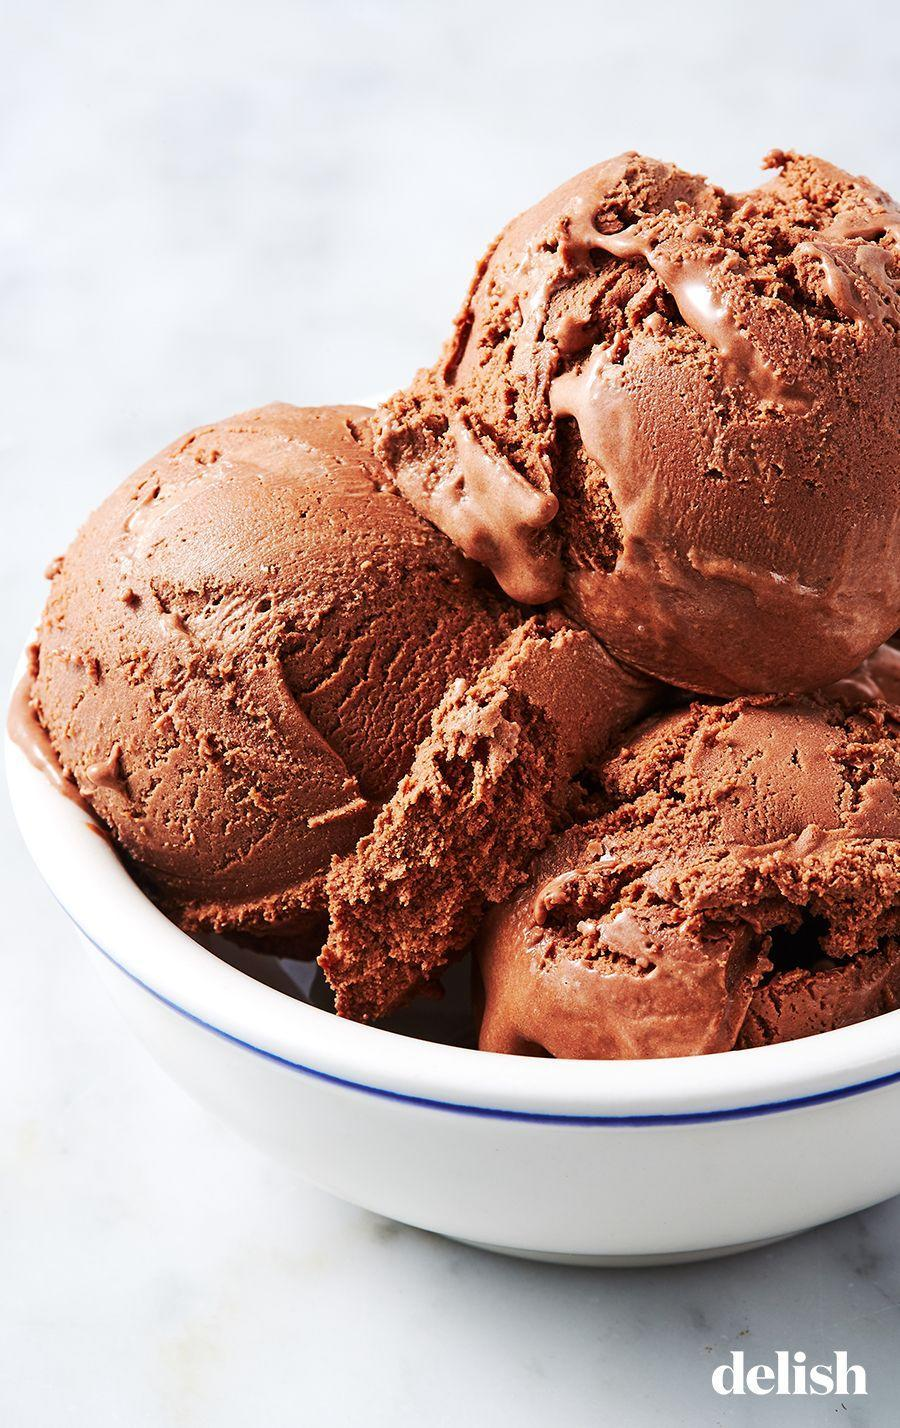 """<p>Worth every bit of effort.</p><p>Get the recipe from <a href=""""https://www.delish.com/cooking/recipe-ideas/a26977162/chocolate-ice-cream-recipe/"""" rel=""""nofollow noopener"""" target=""""_blank"""" data-ylk=""""slk:Delish"""" class=""""link rapid-noclick-resp"""">Delish</a>. </p>"""